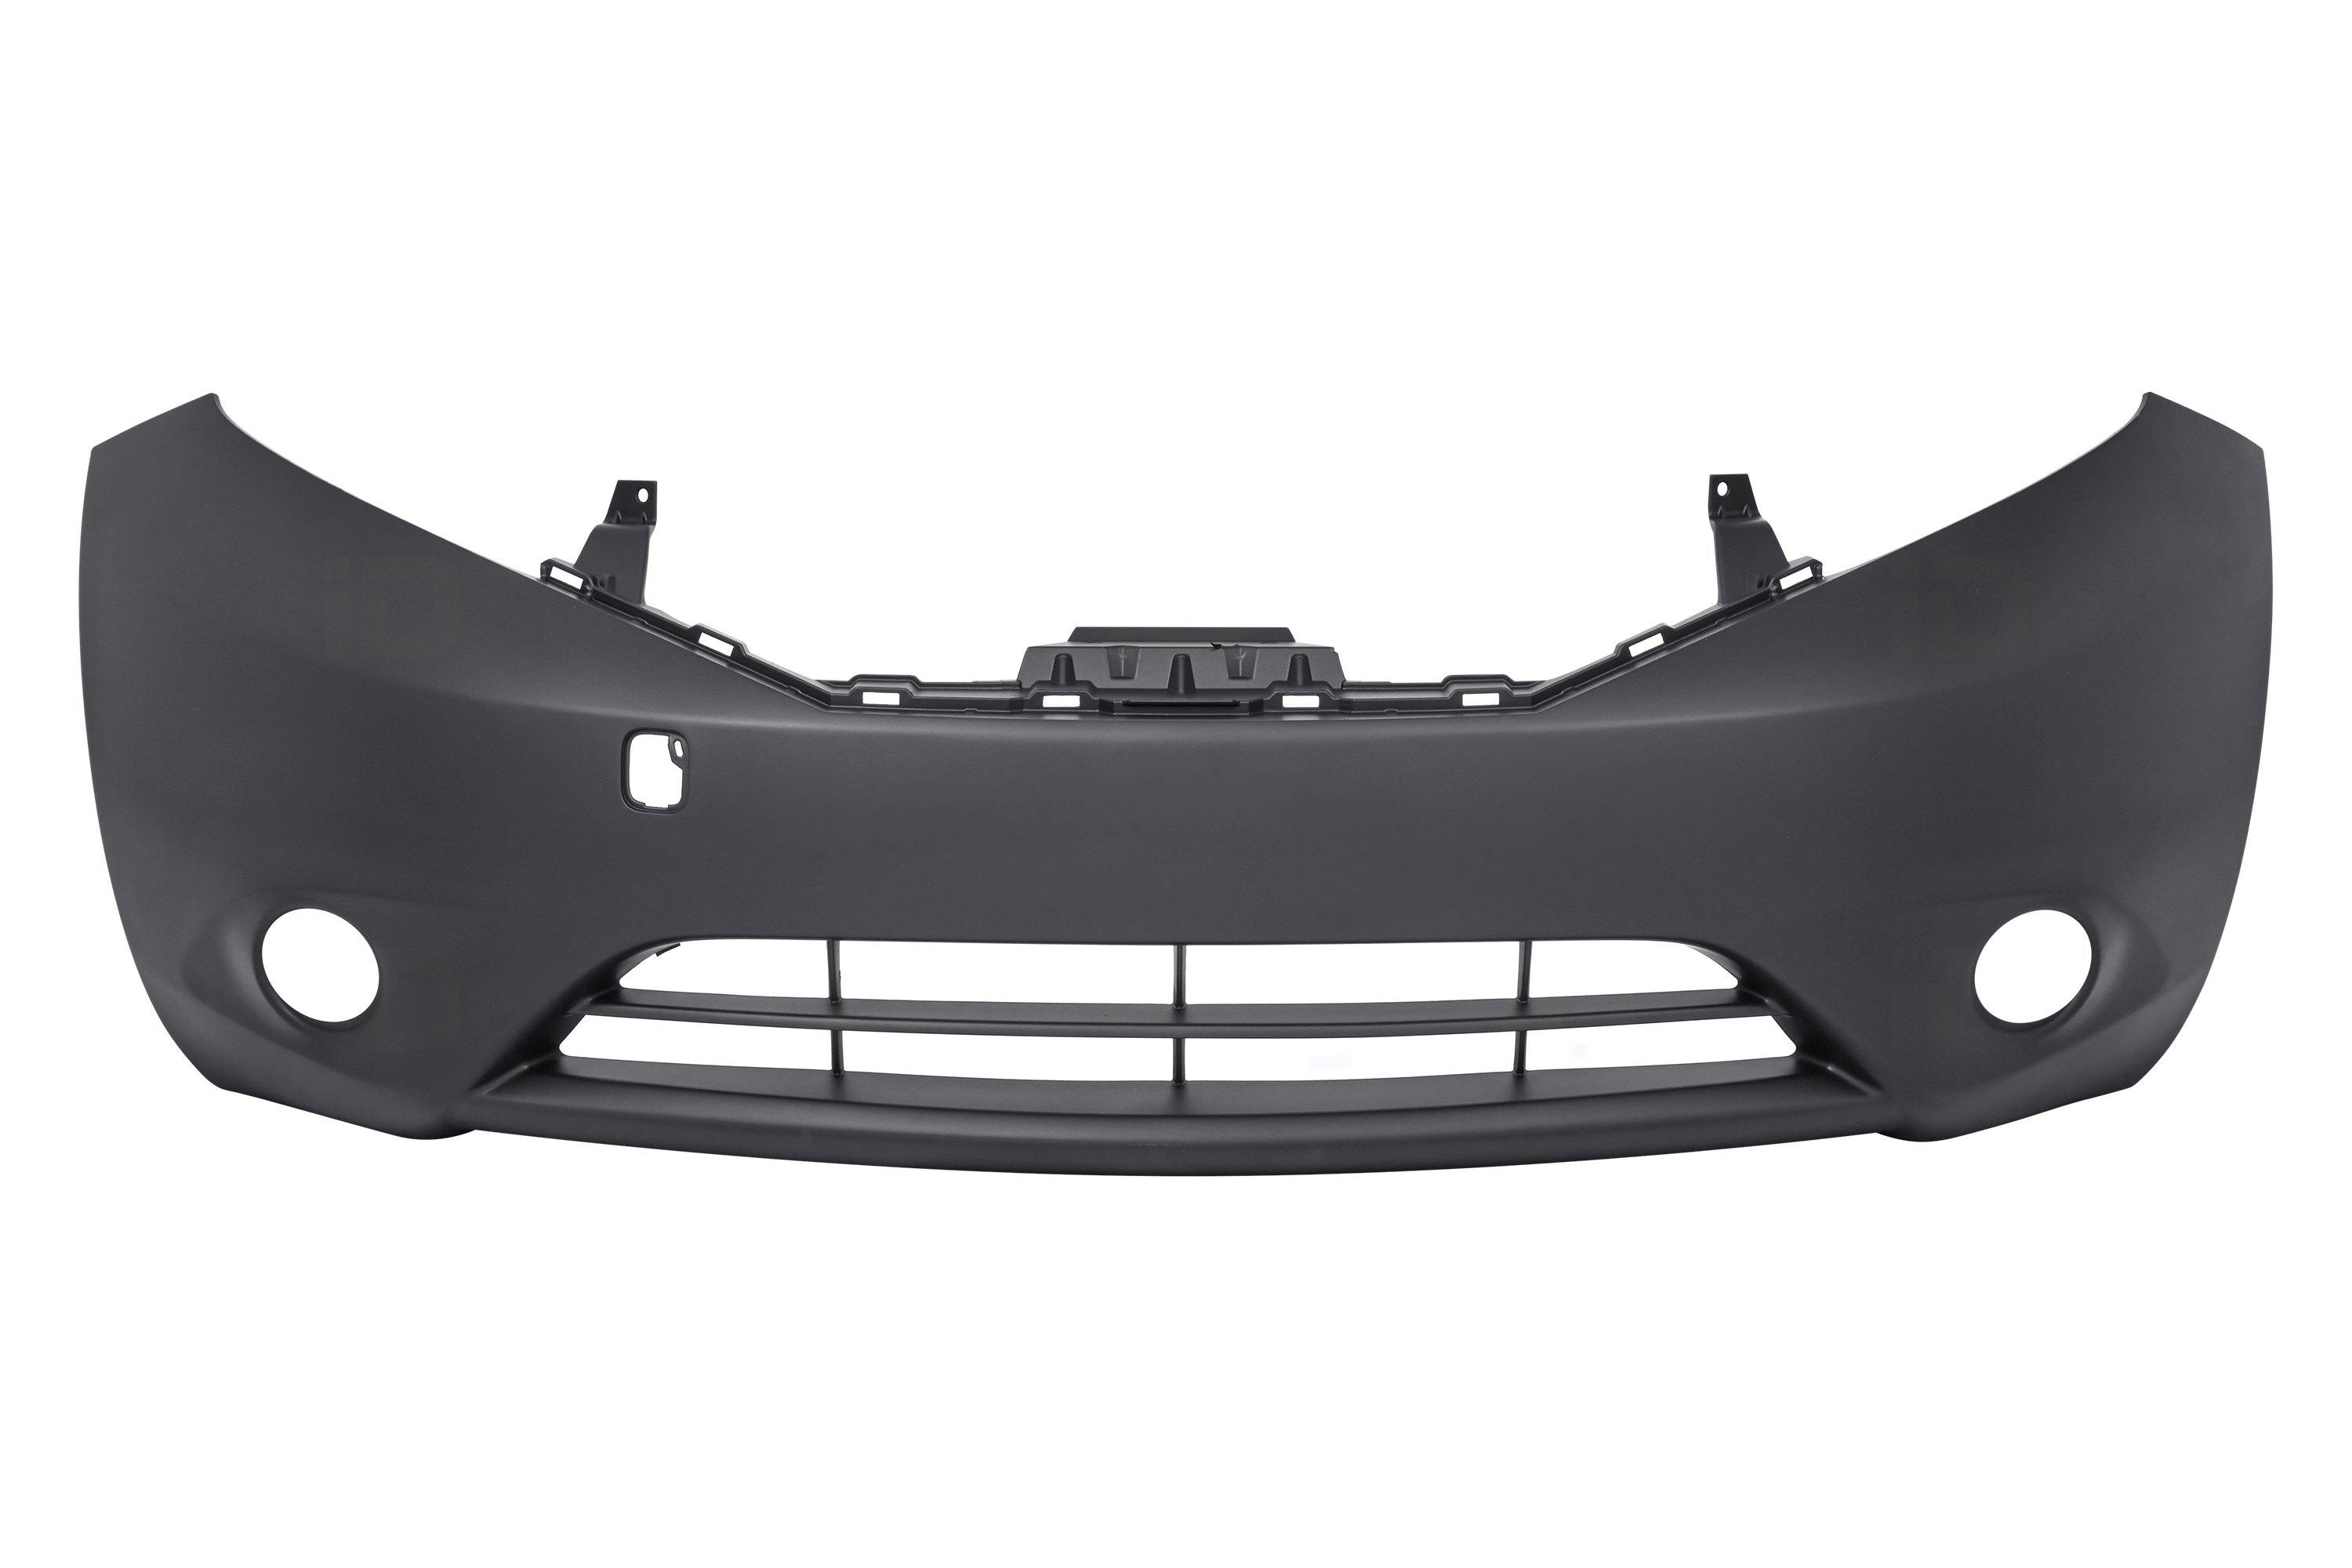 for Nissan Versa NI1044110 2015 to 2016 Front New Bumper Trim